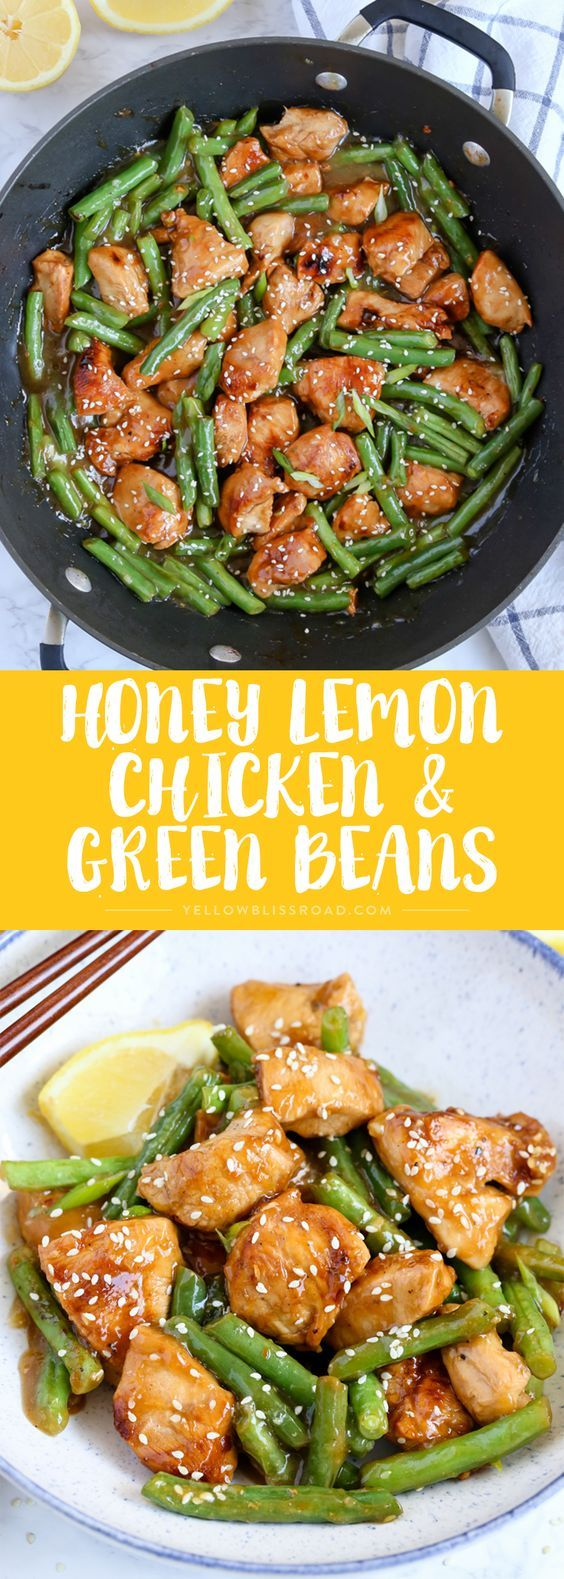 Honey Lemon Chicken and Green Beans images